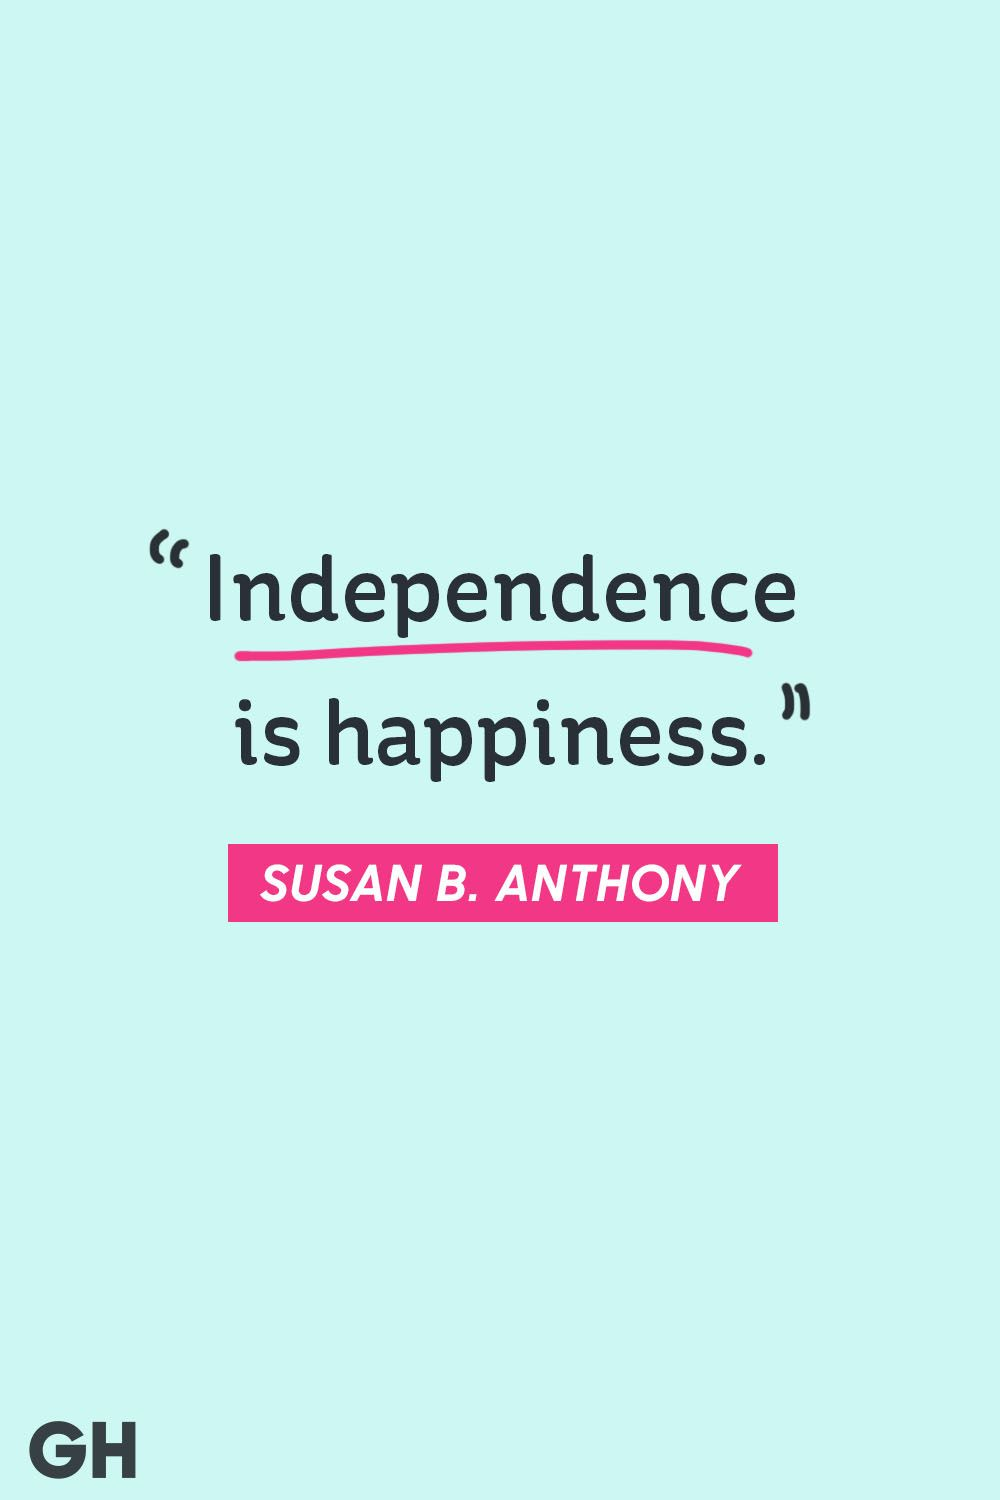 Happiness Quote | 22 Happy Quotes Best Quotes About Happiness And Joy